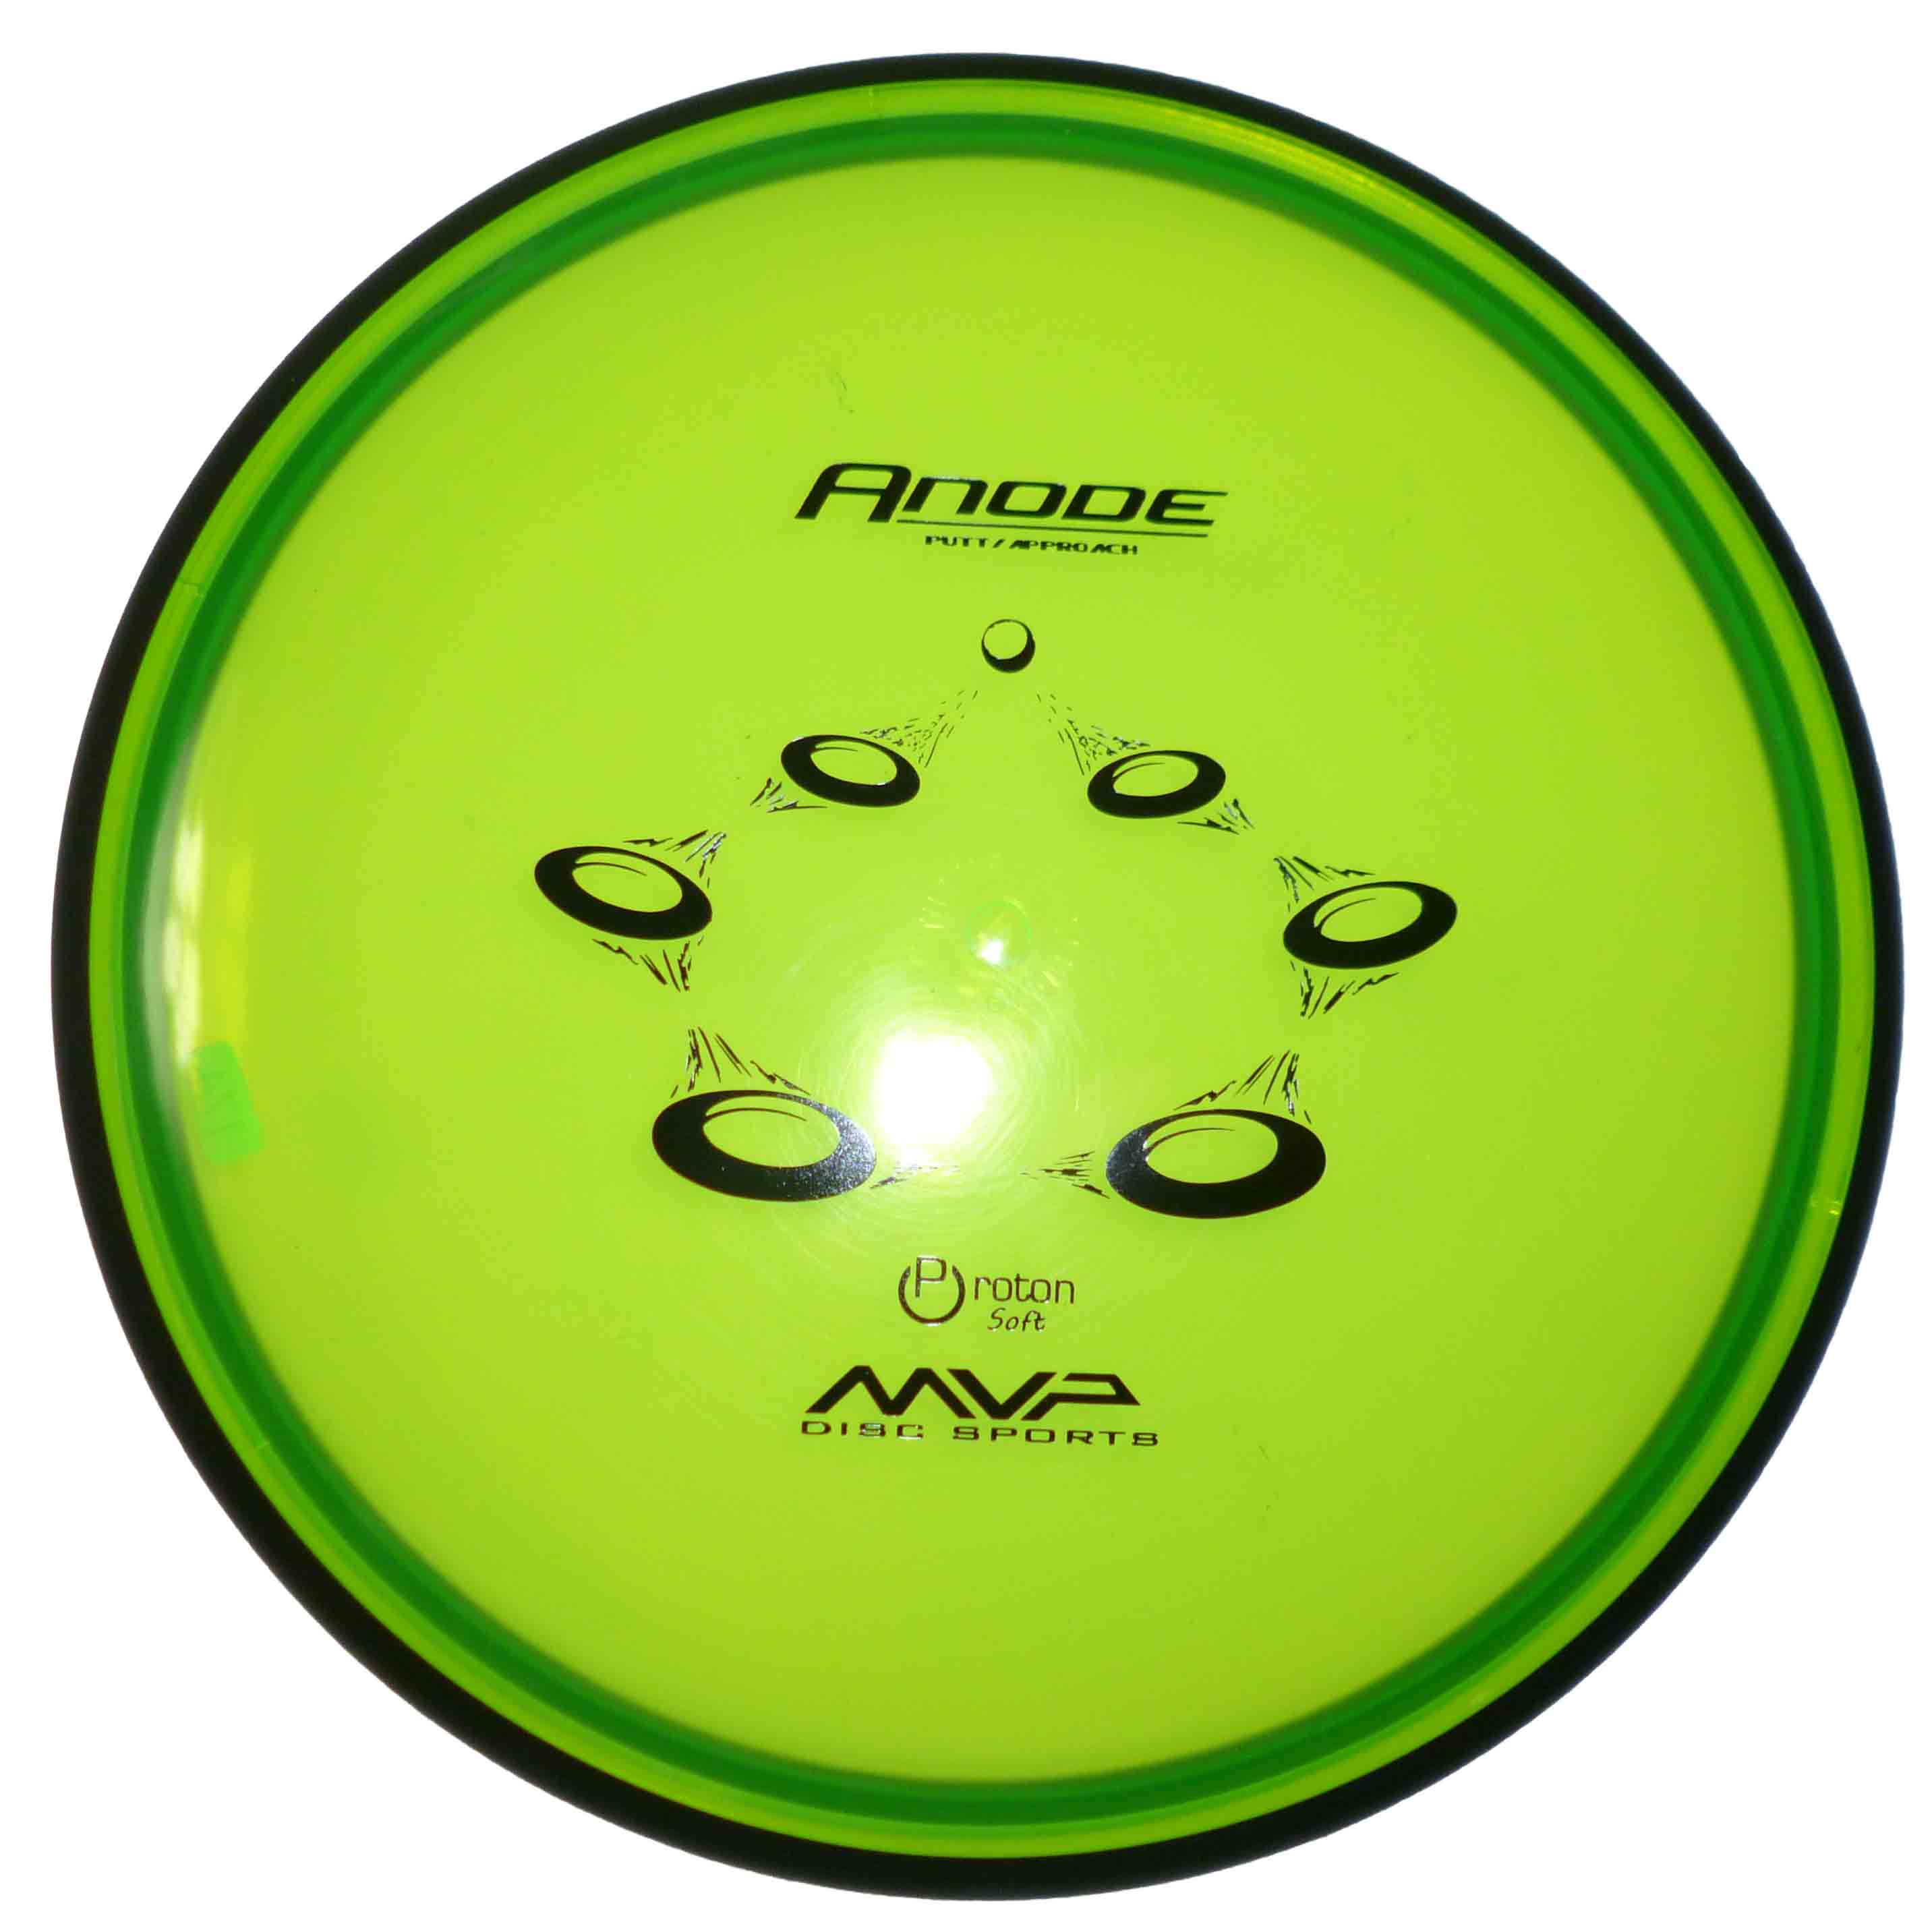 Anode Soft Proton Green